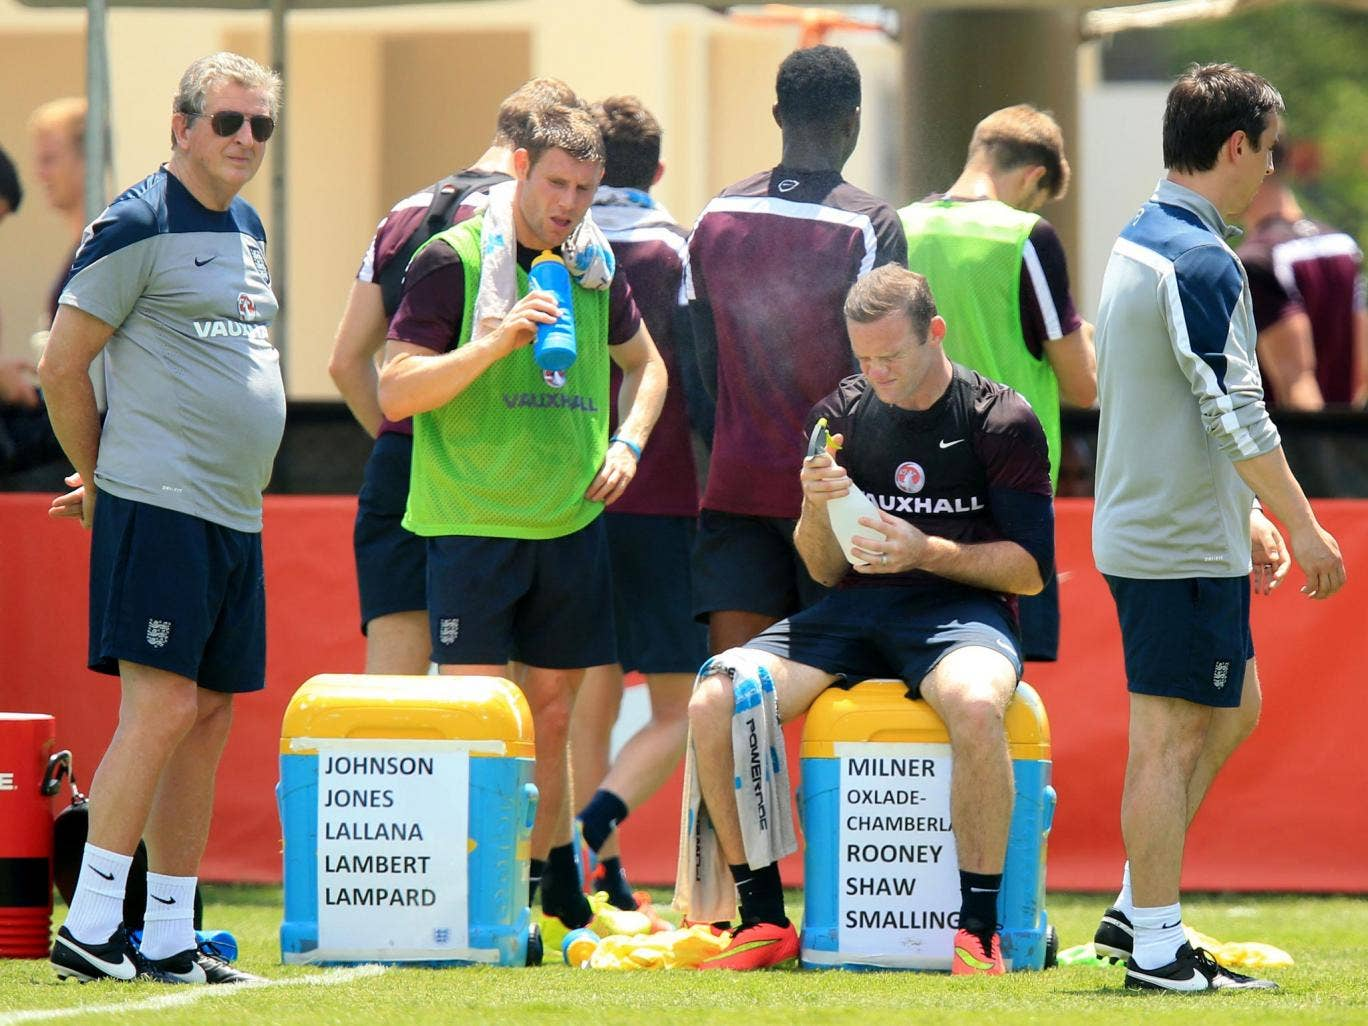 Wayne Rooney (right) and James Milner feel the heat as Roy Hodgson looks on during England training yesterday